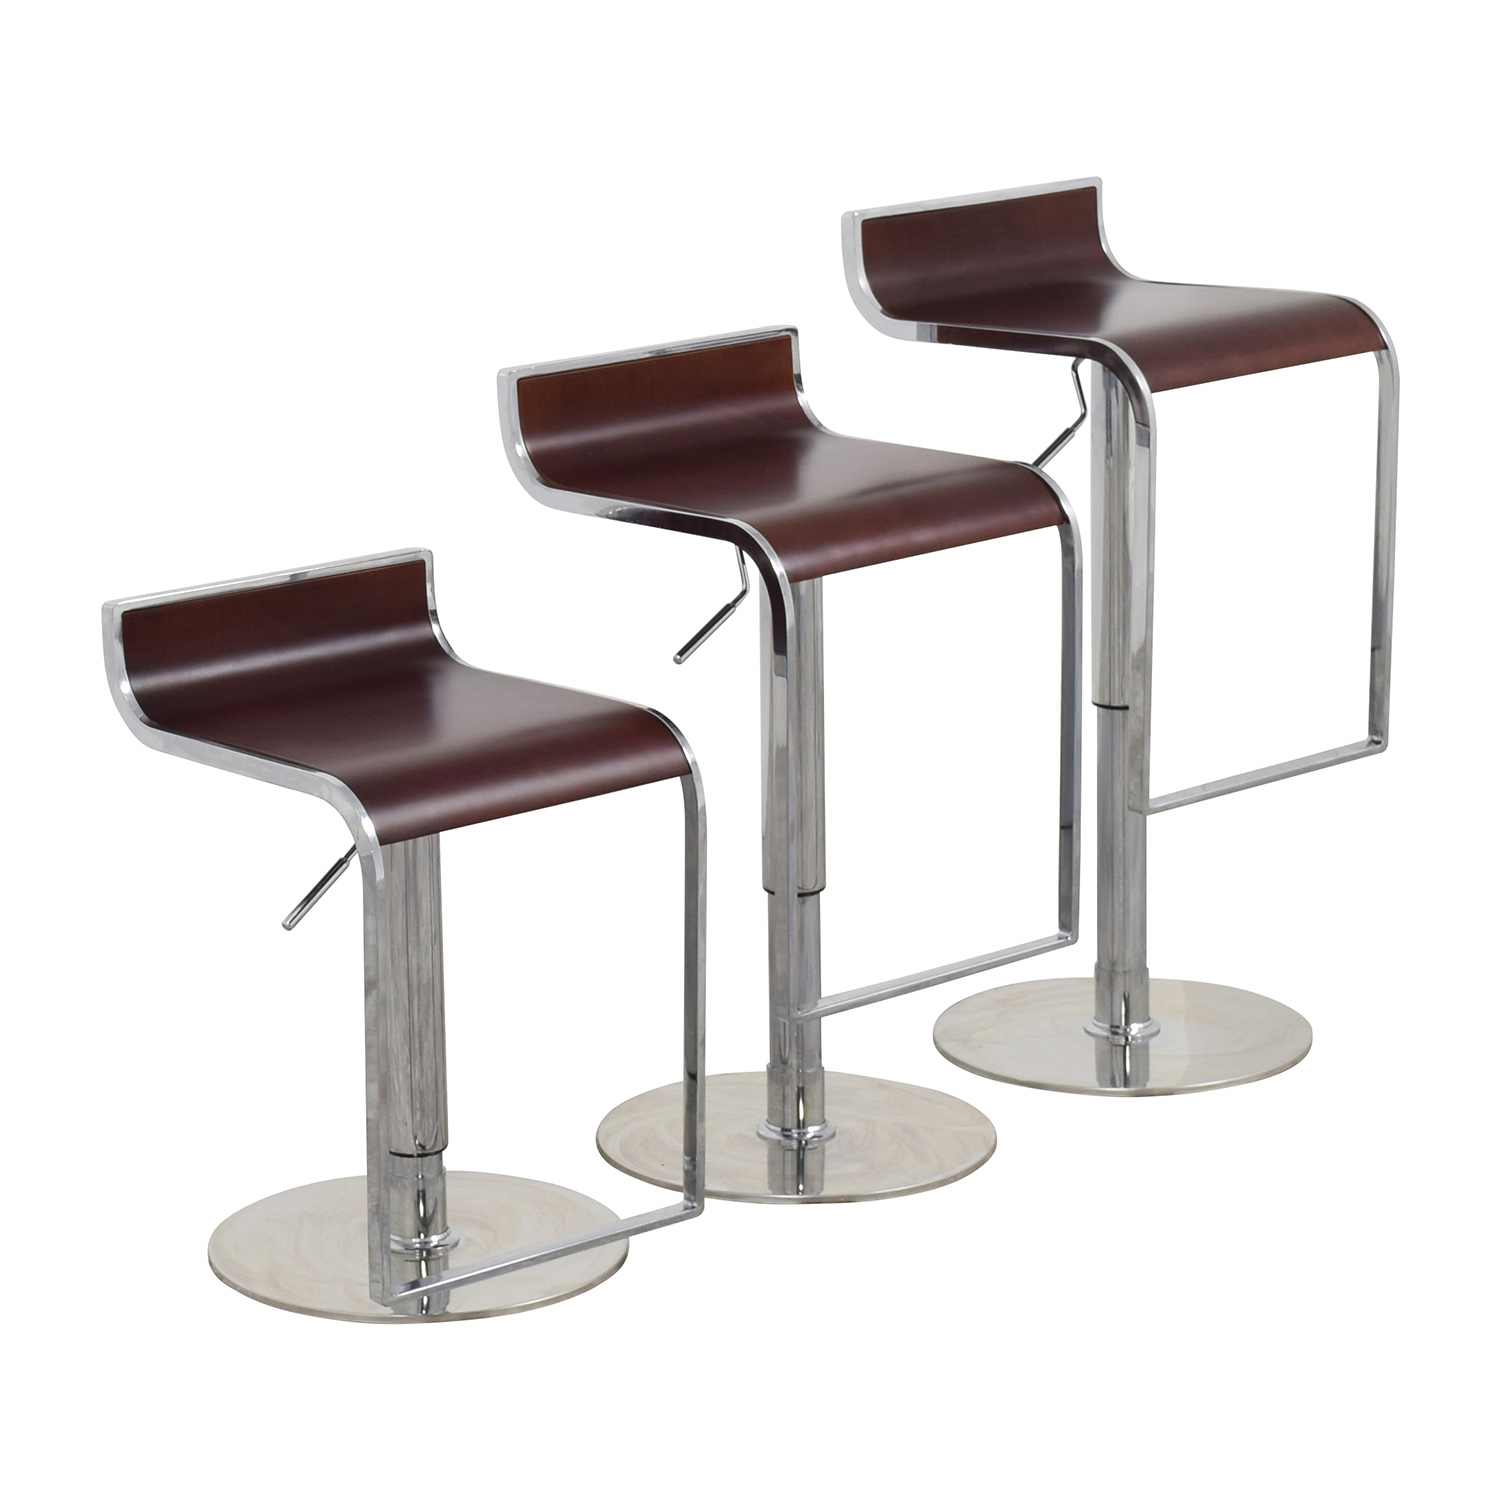 Brown Adjustable Bar Stool 84 Off Inmod Inmod Forest Brown Adjustable Bar Counter